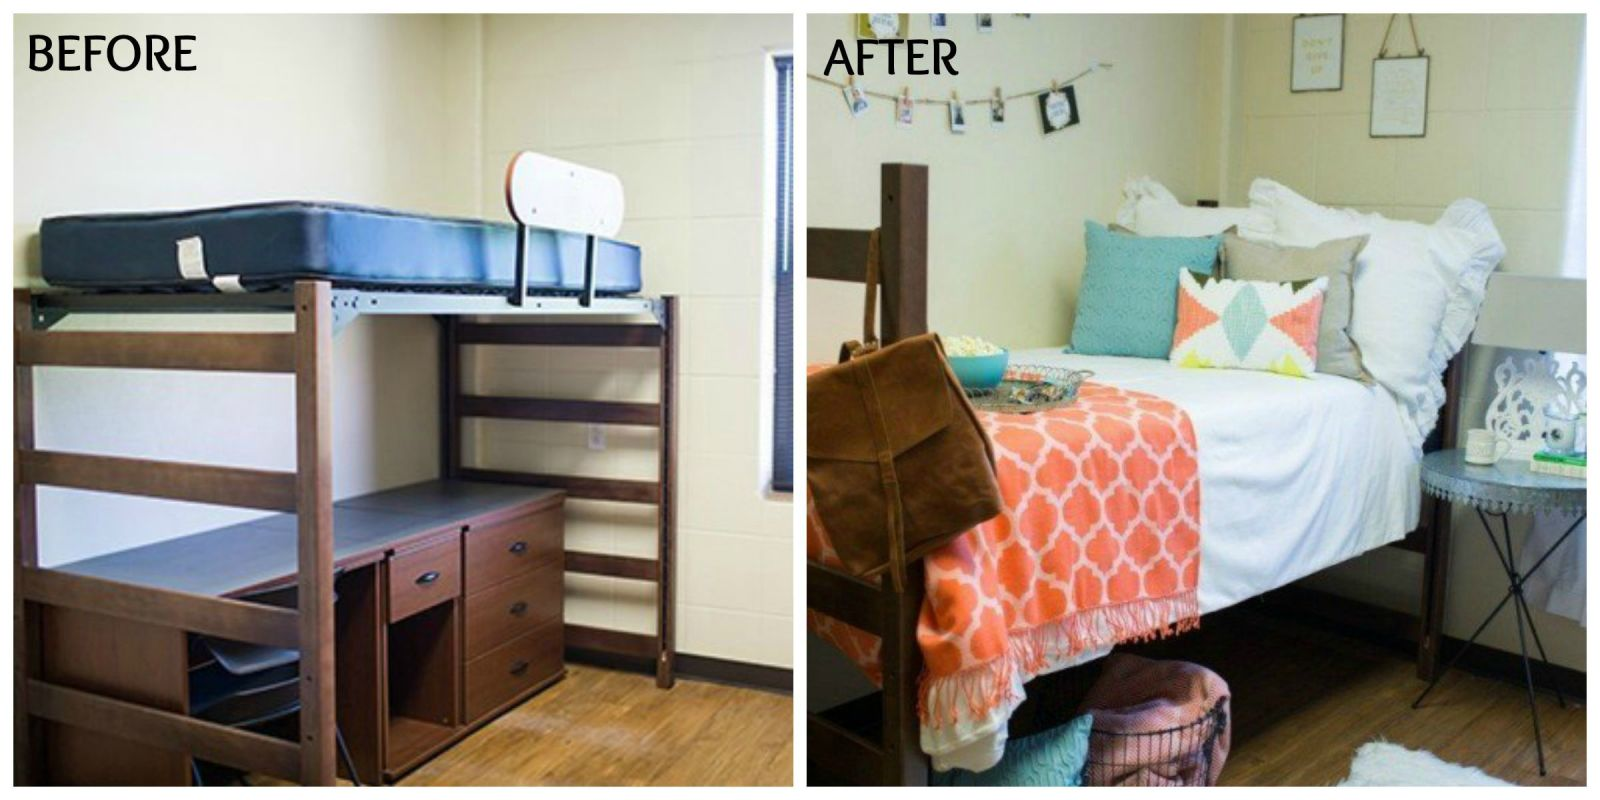 Joanna gaines dorm room makeover magnolia homes decorating - Dorm room bedding ideas ...